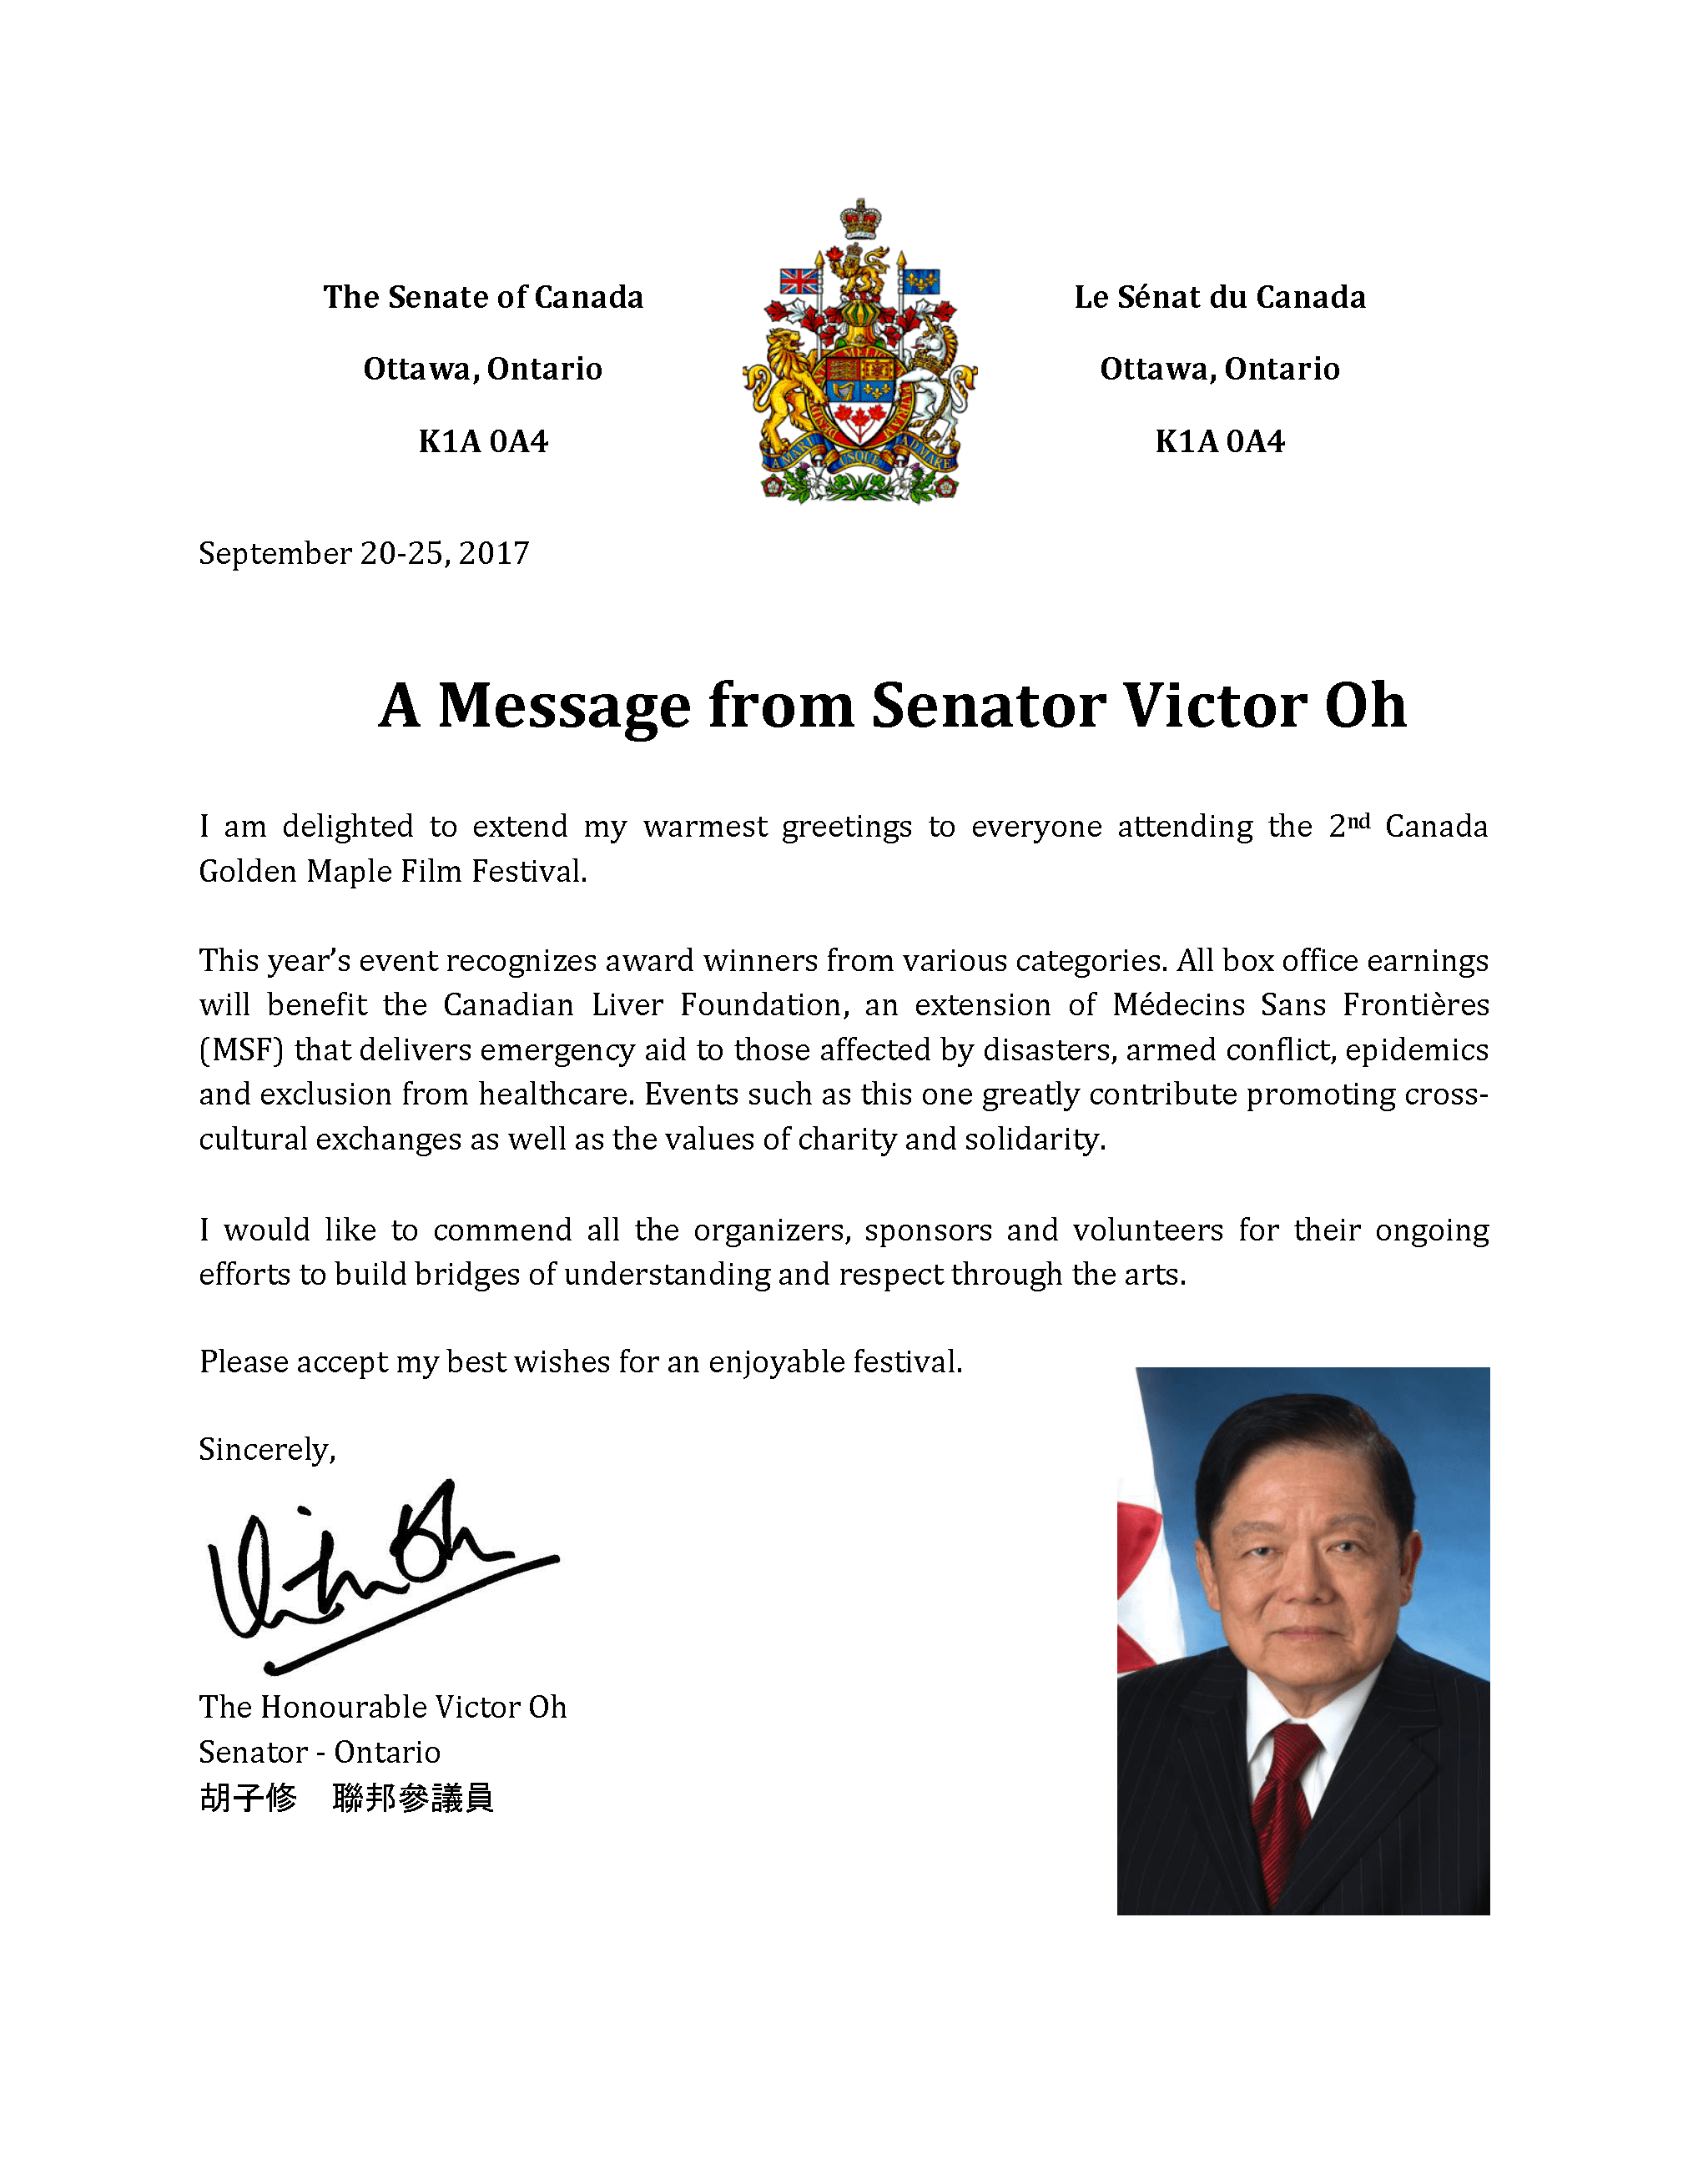 Congratulatory Letter from Honorable Victor Oh, Senator